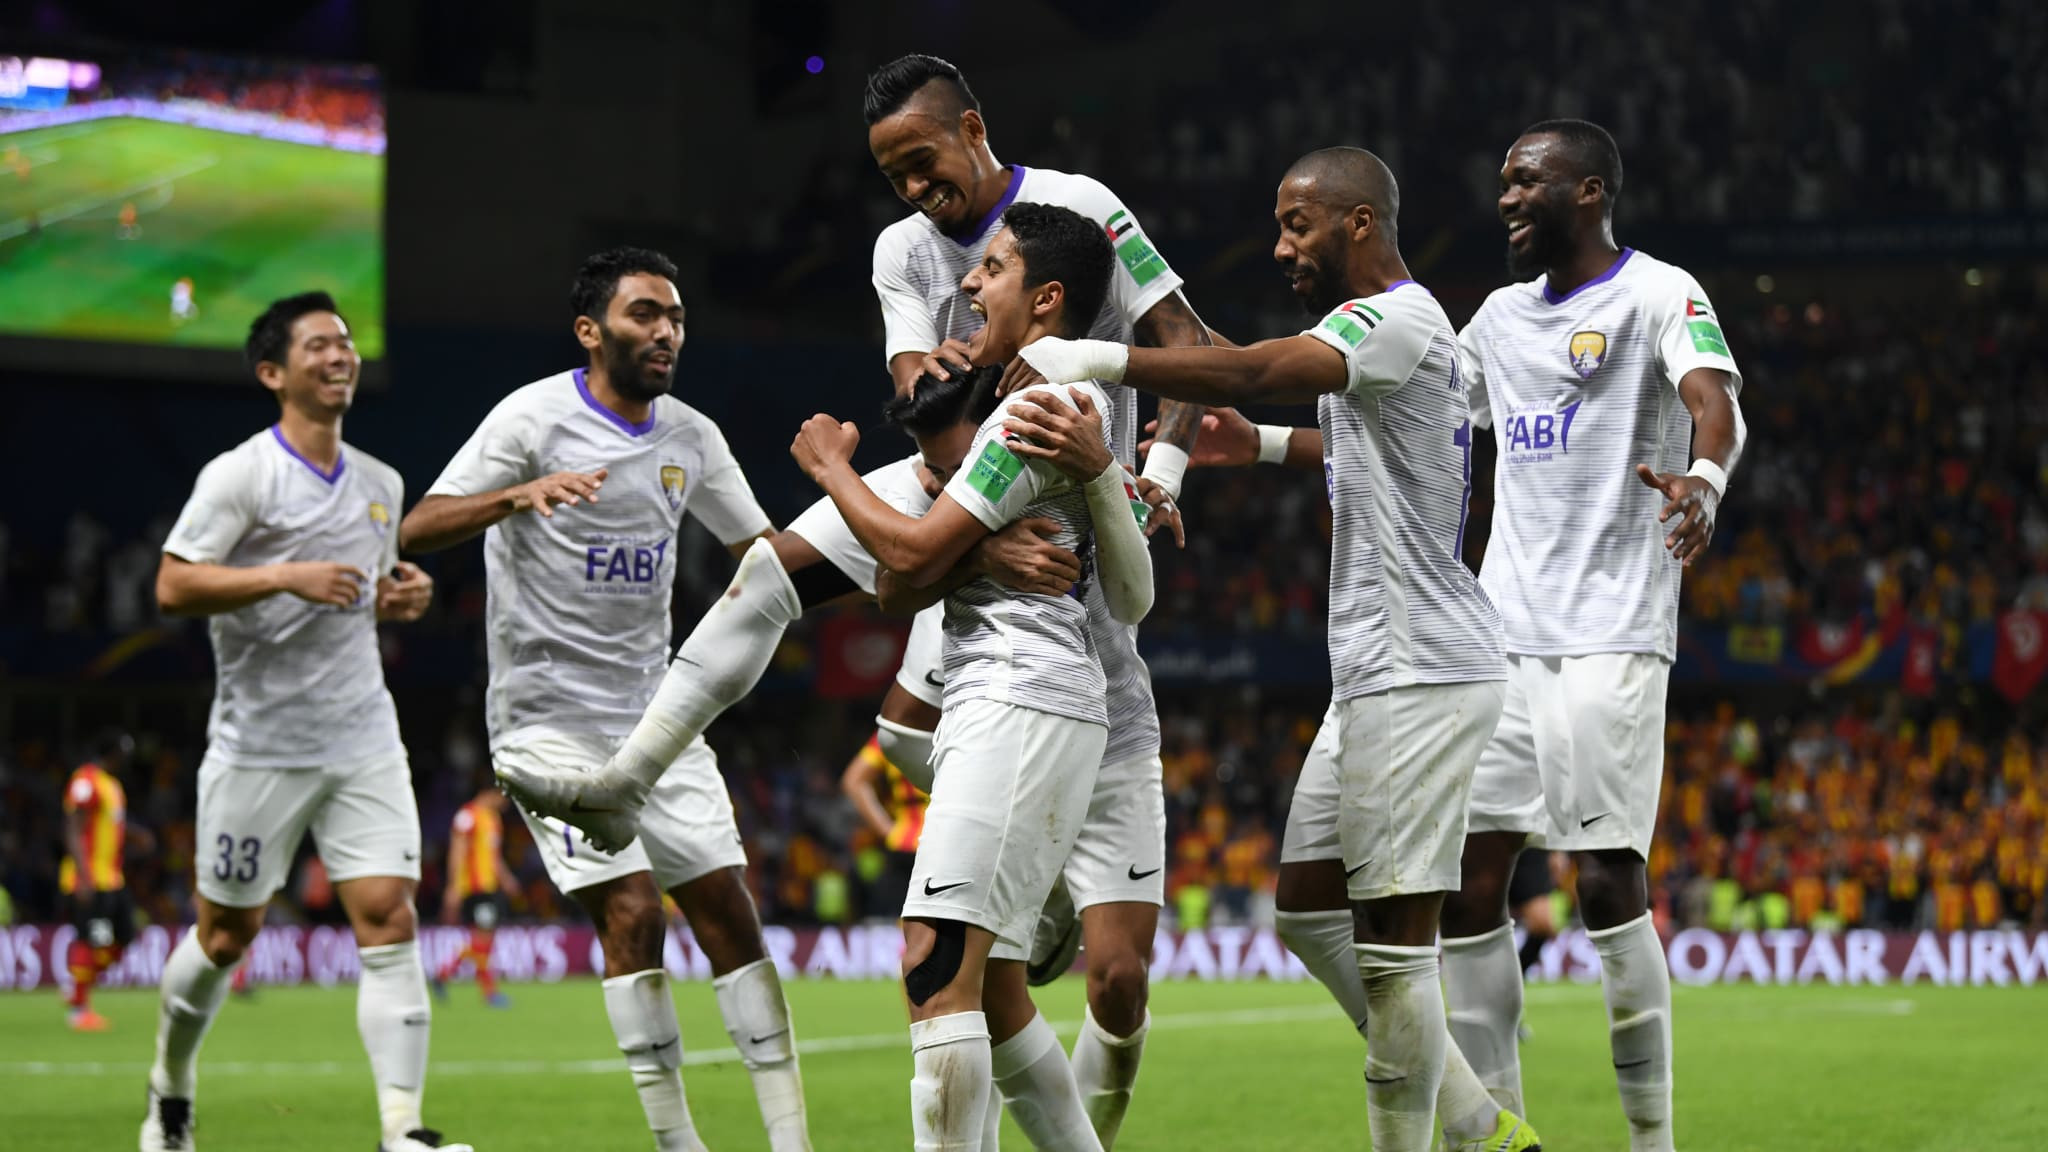 Local heroes Al Ain and Kashima Antlers earn FIFA Club World Cup semi-finals against River Plate and Real Madrid